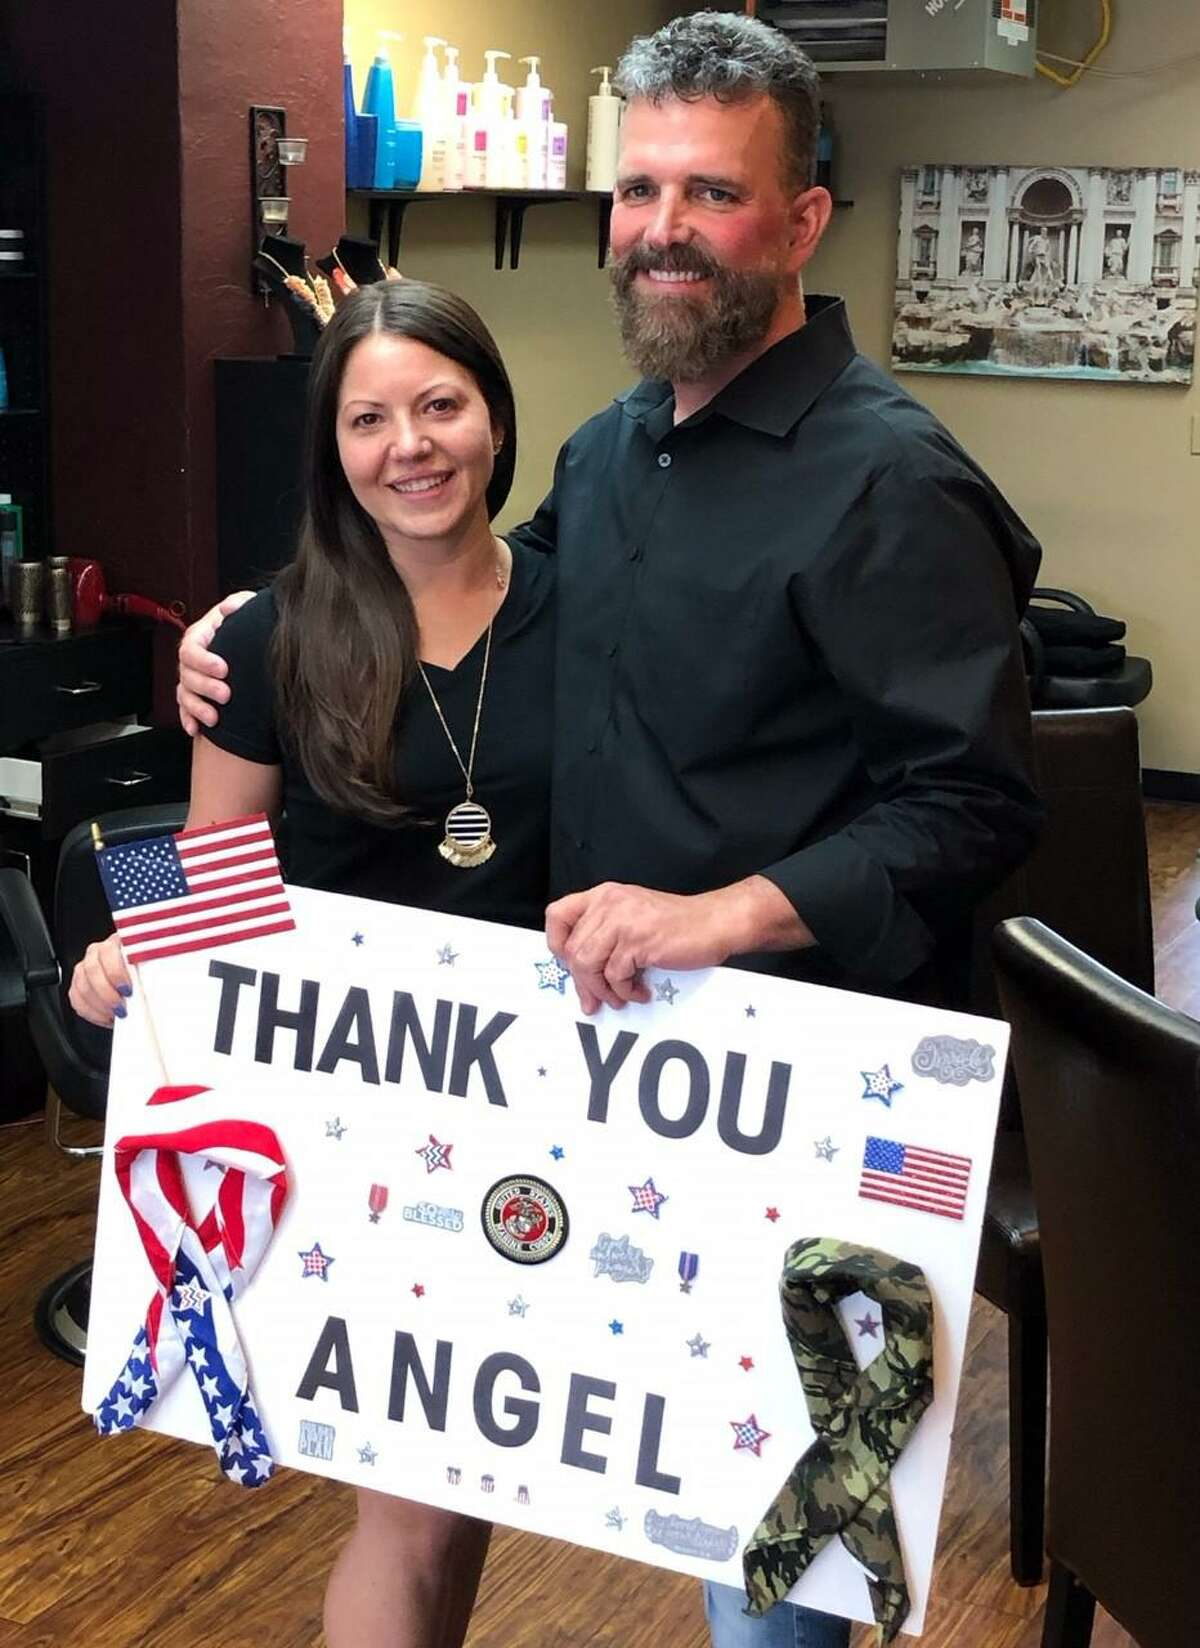 Jessica Rabasco learns that John Rubino is a match and will be donating a kidney to her during a surprise announcement at Tagliare Salon in Stamford.